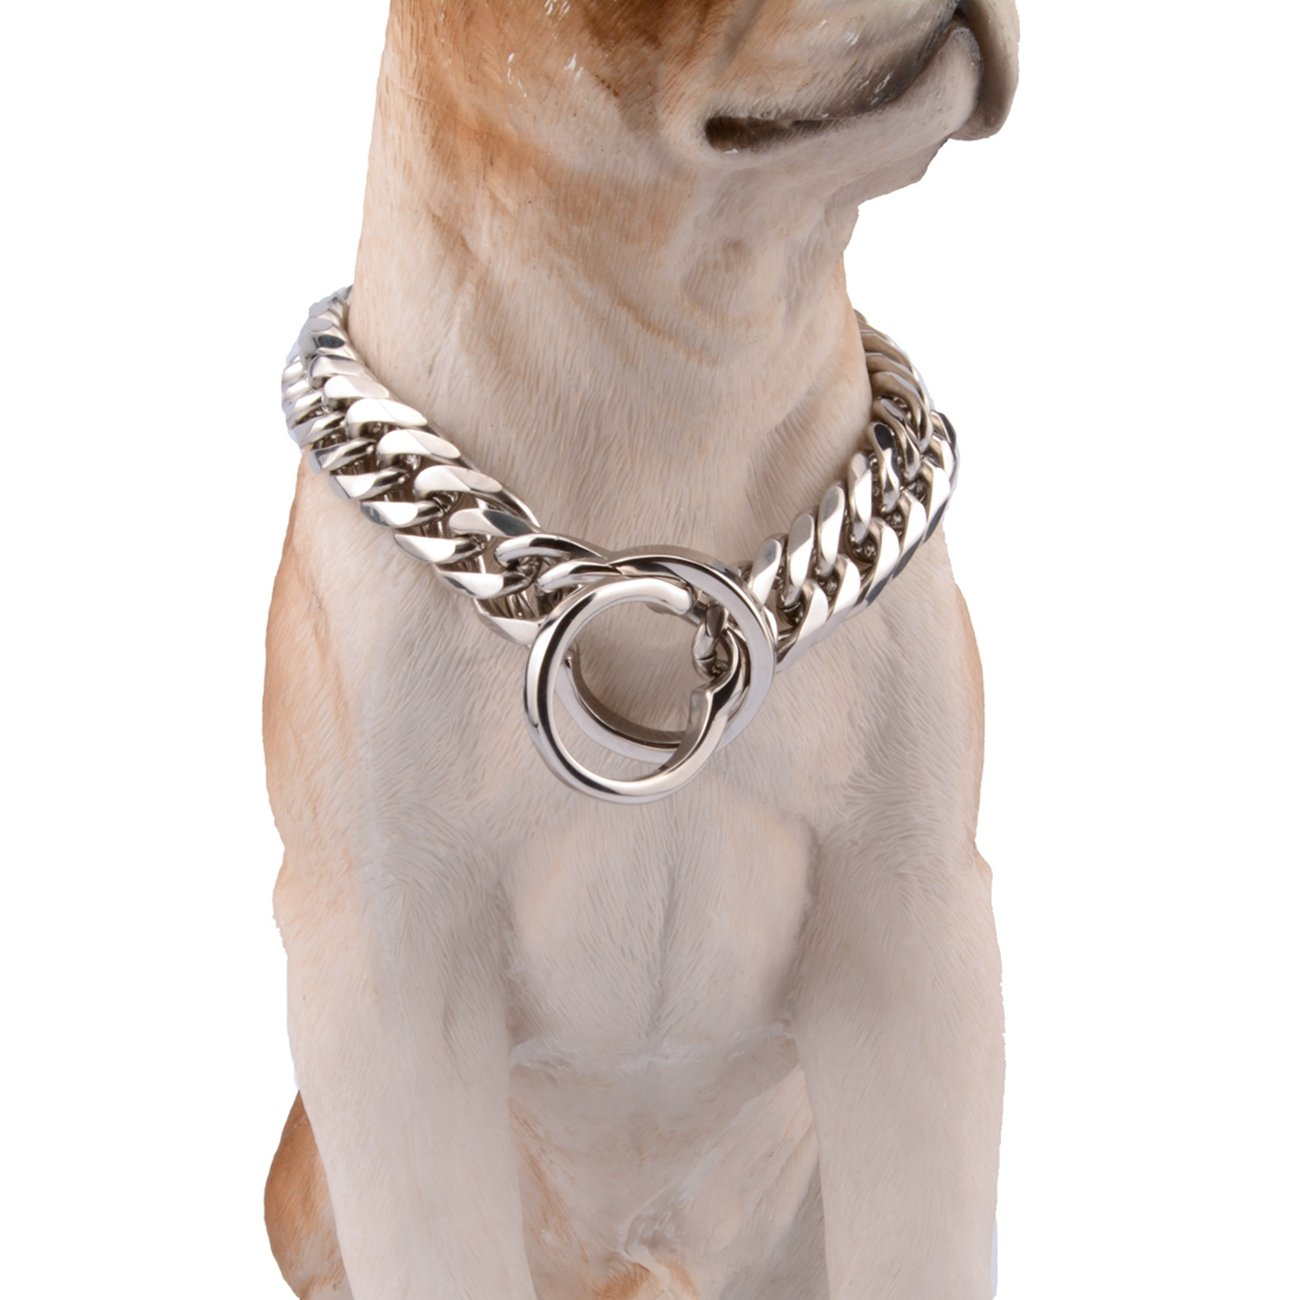 14inch recommend dog's neck 10inch Innovative jewelry 16mm Stainless Steel Silver Heavy Dog Choke Curb Chain Collar Pet Necklace Strong Big Breeds,14-34 (14 )